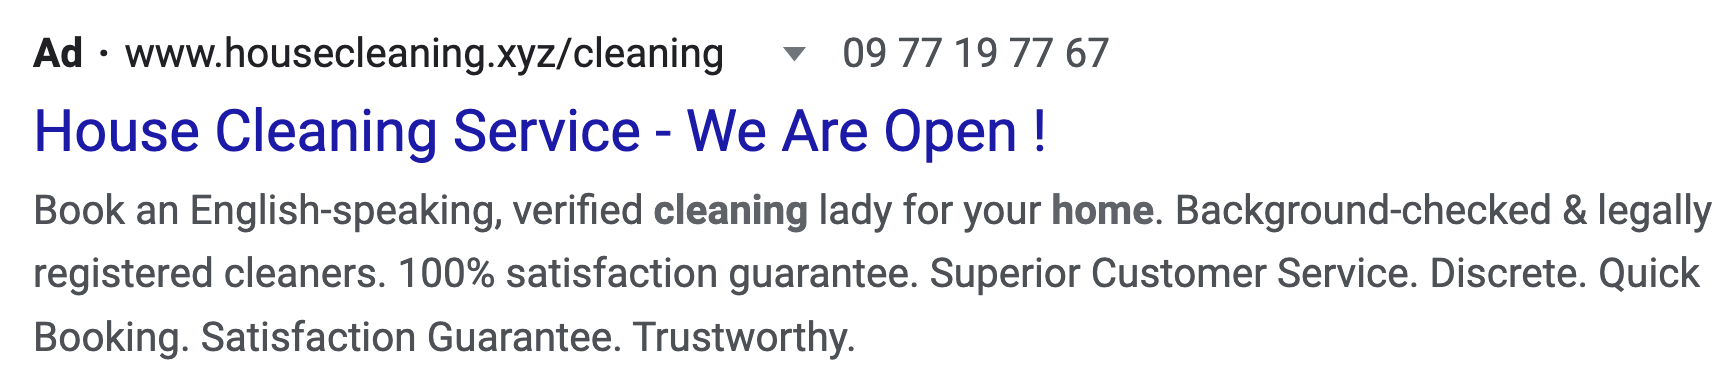 Example of ad messaging callout: we are open